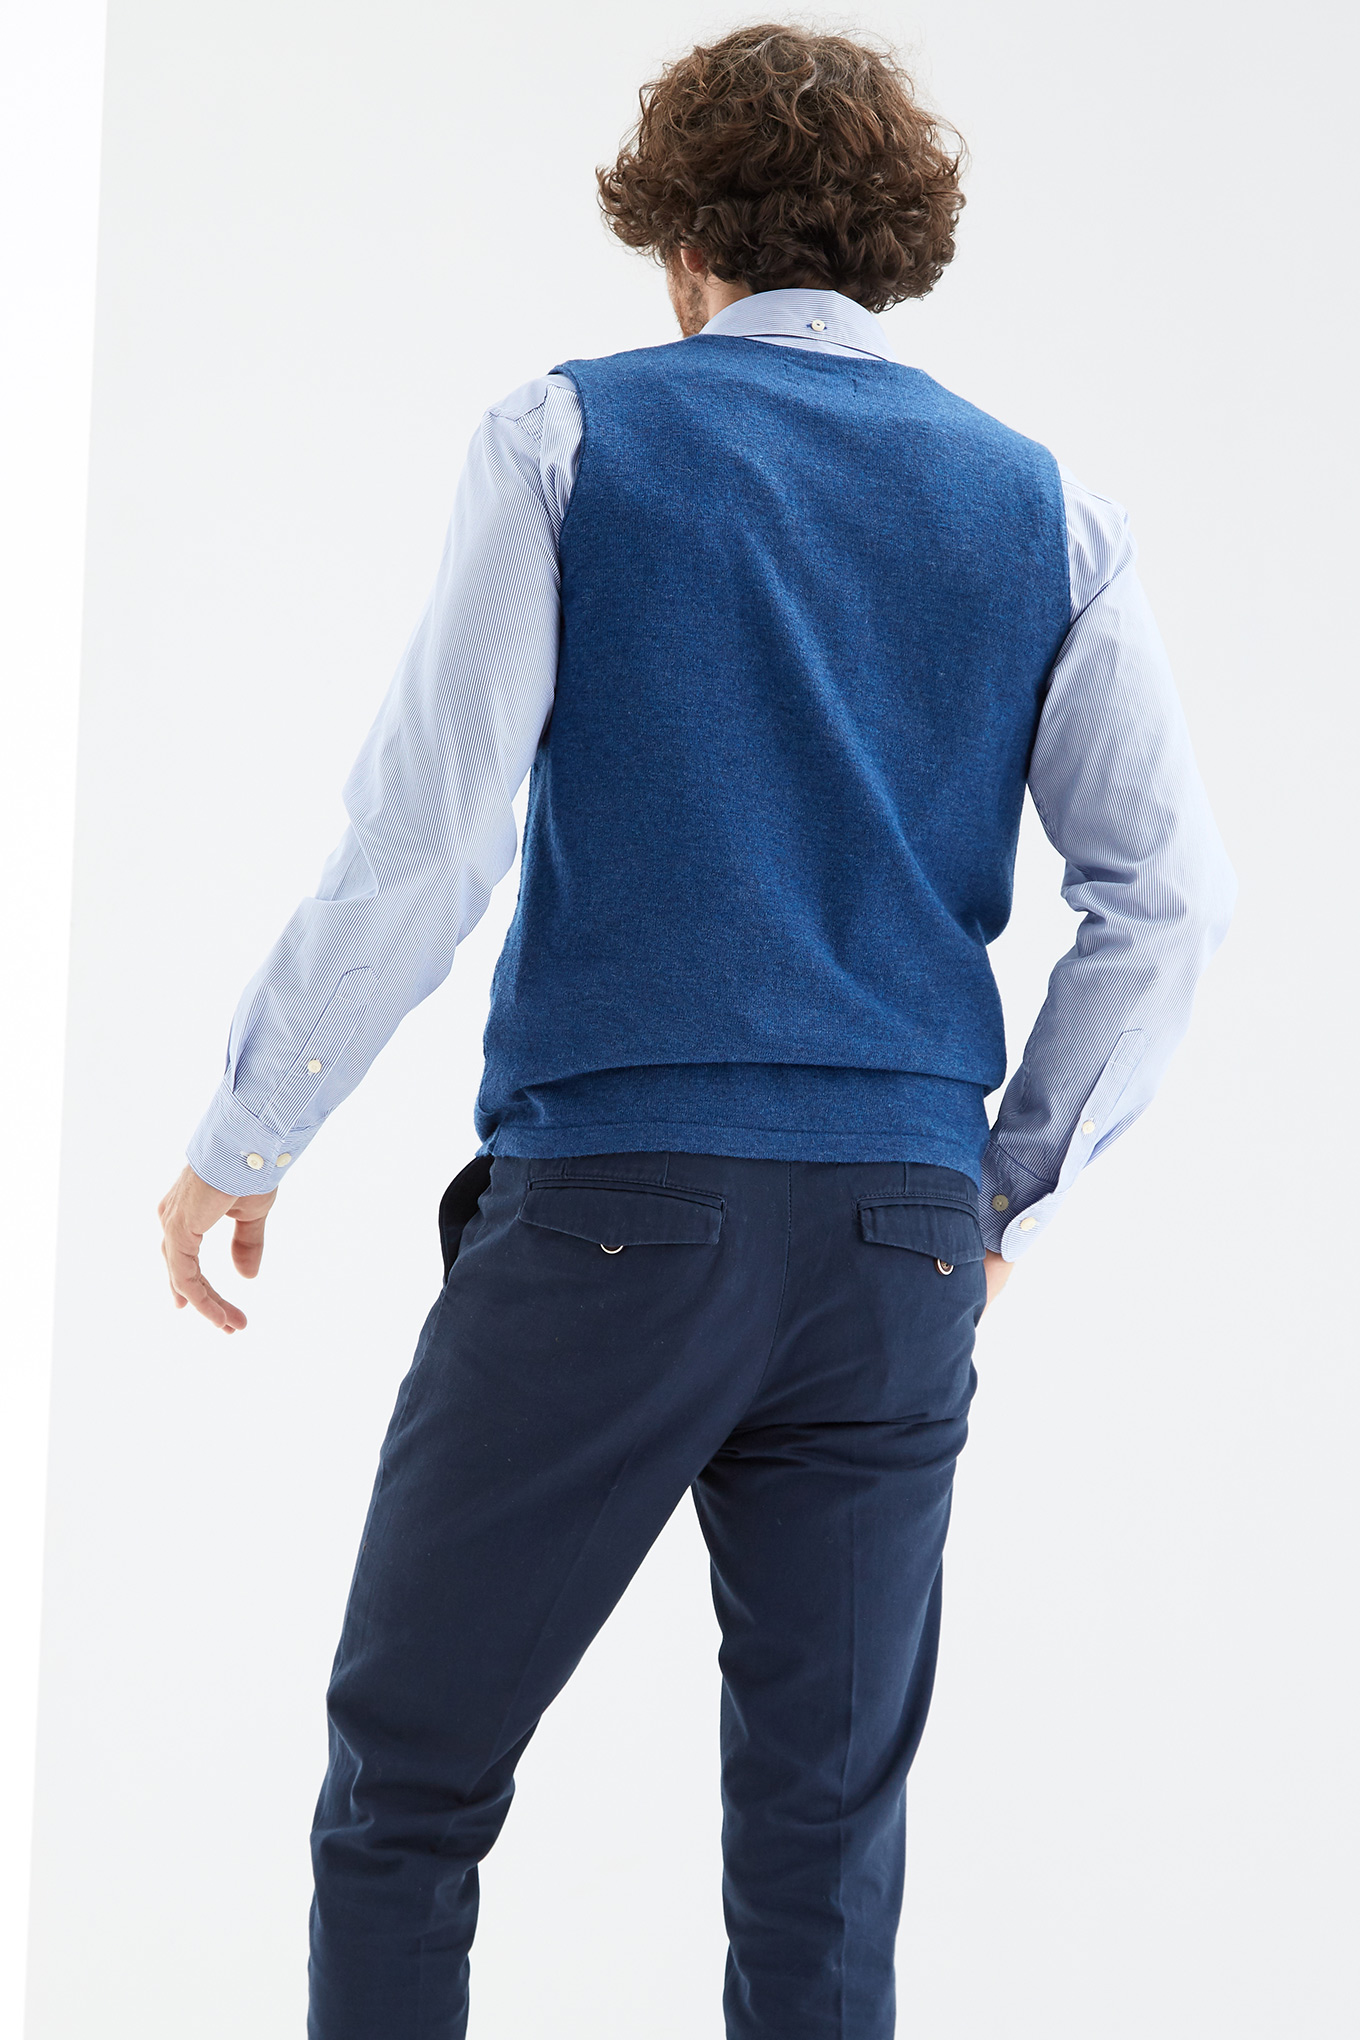 Waist Coat Sweater Medium Blue Sport Man